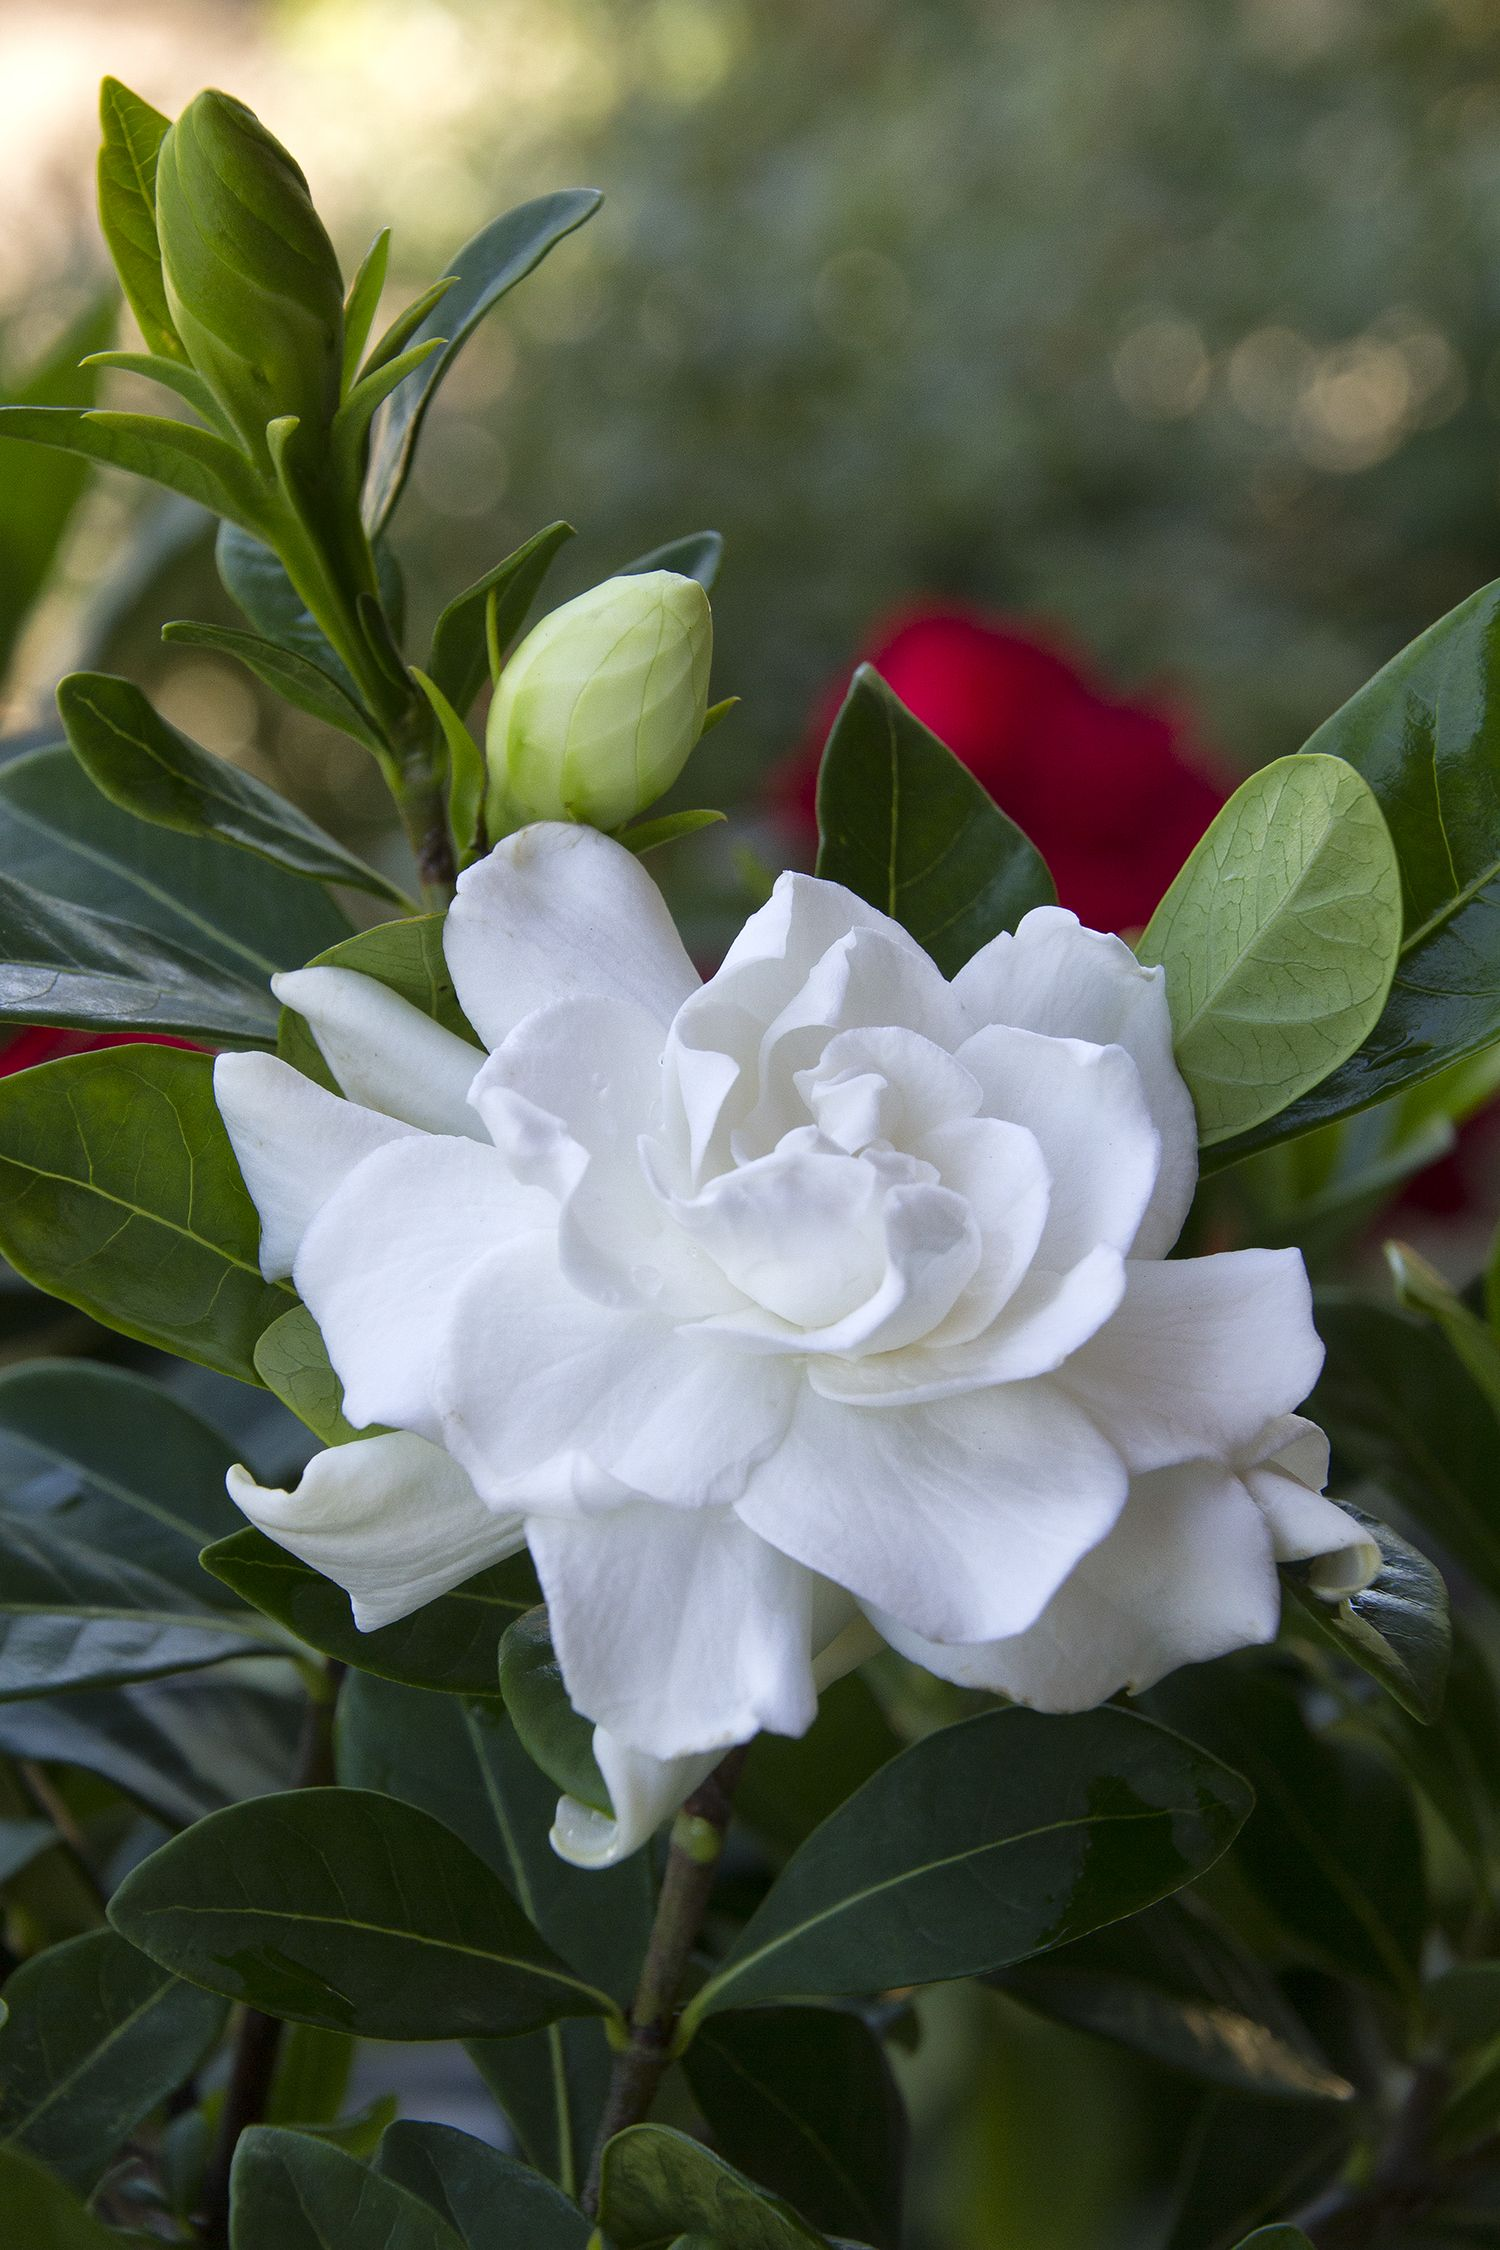 Everblooming Gardenia Highly Prized For The Profusion Of Sweetly